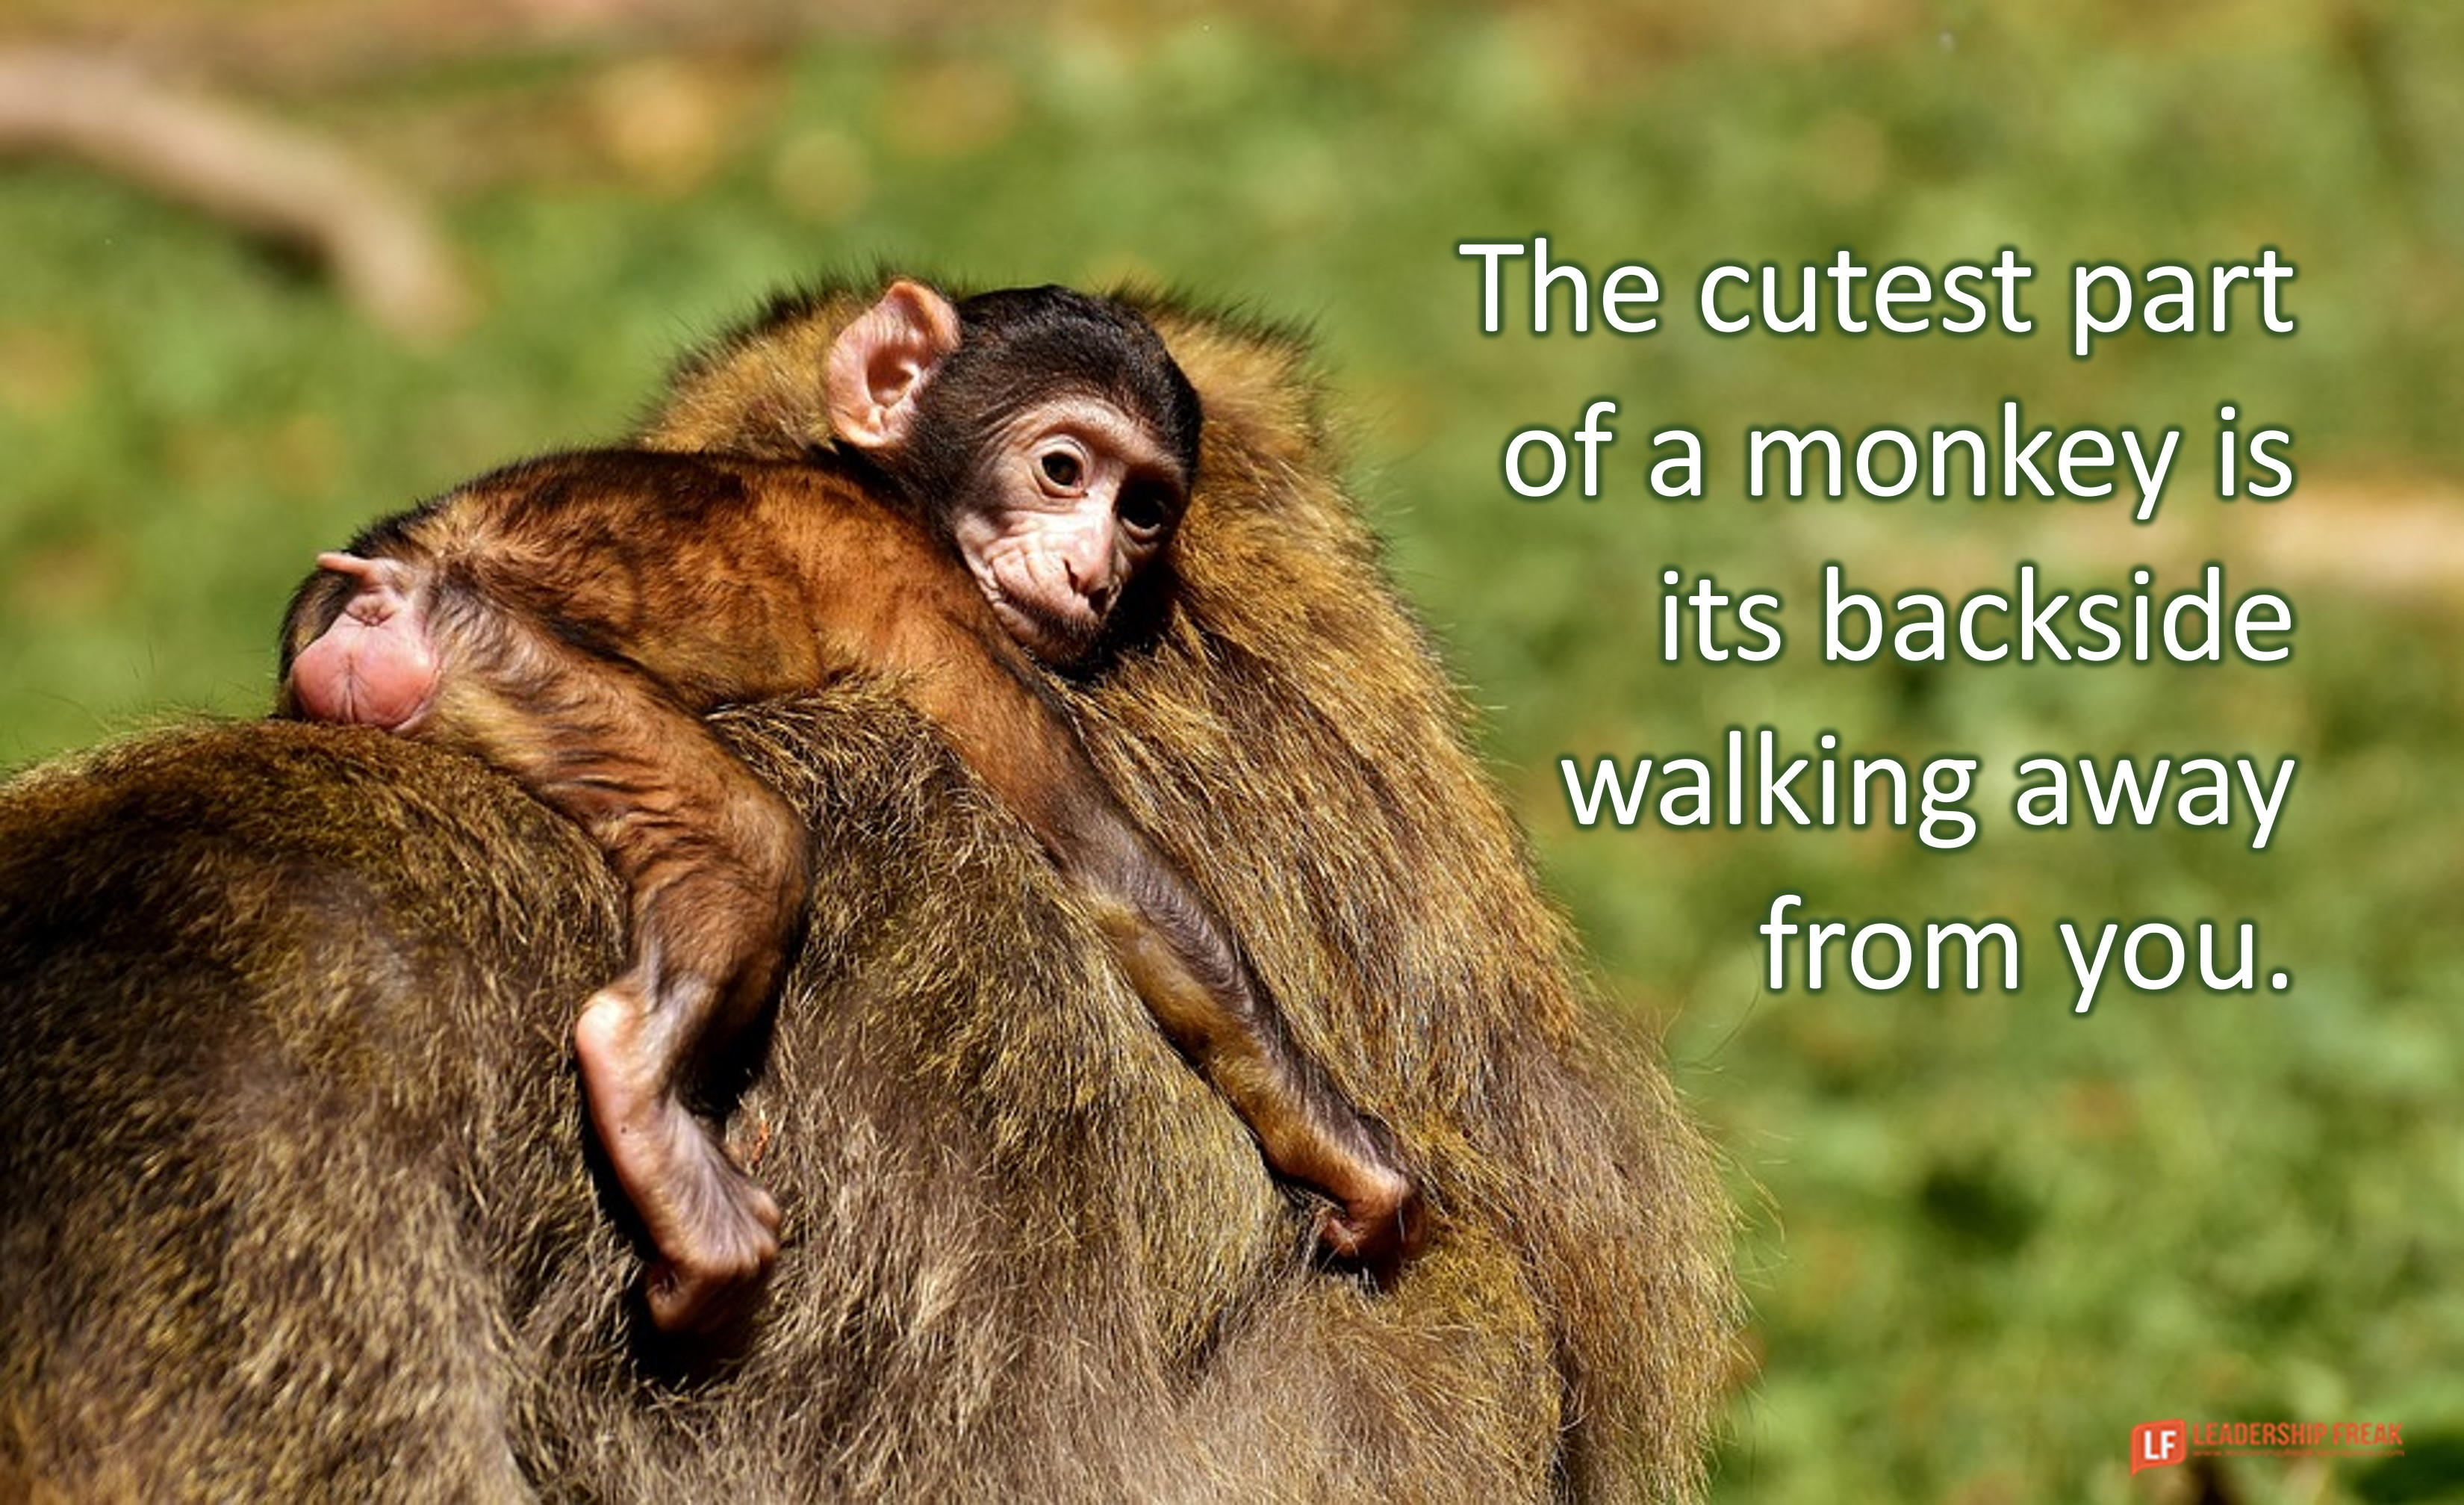 Monkey riding on its parent's back.  The cutest part of a monkey is its backside walking away from you.